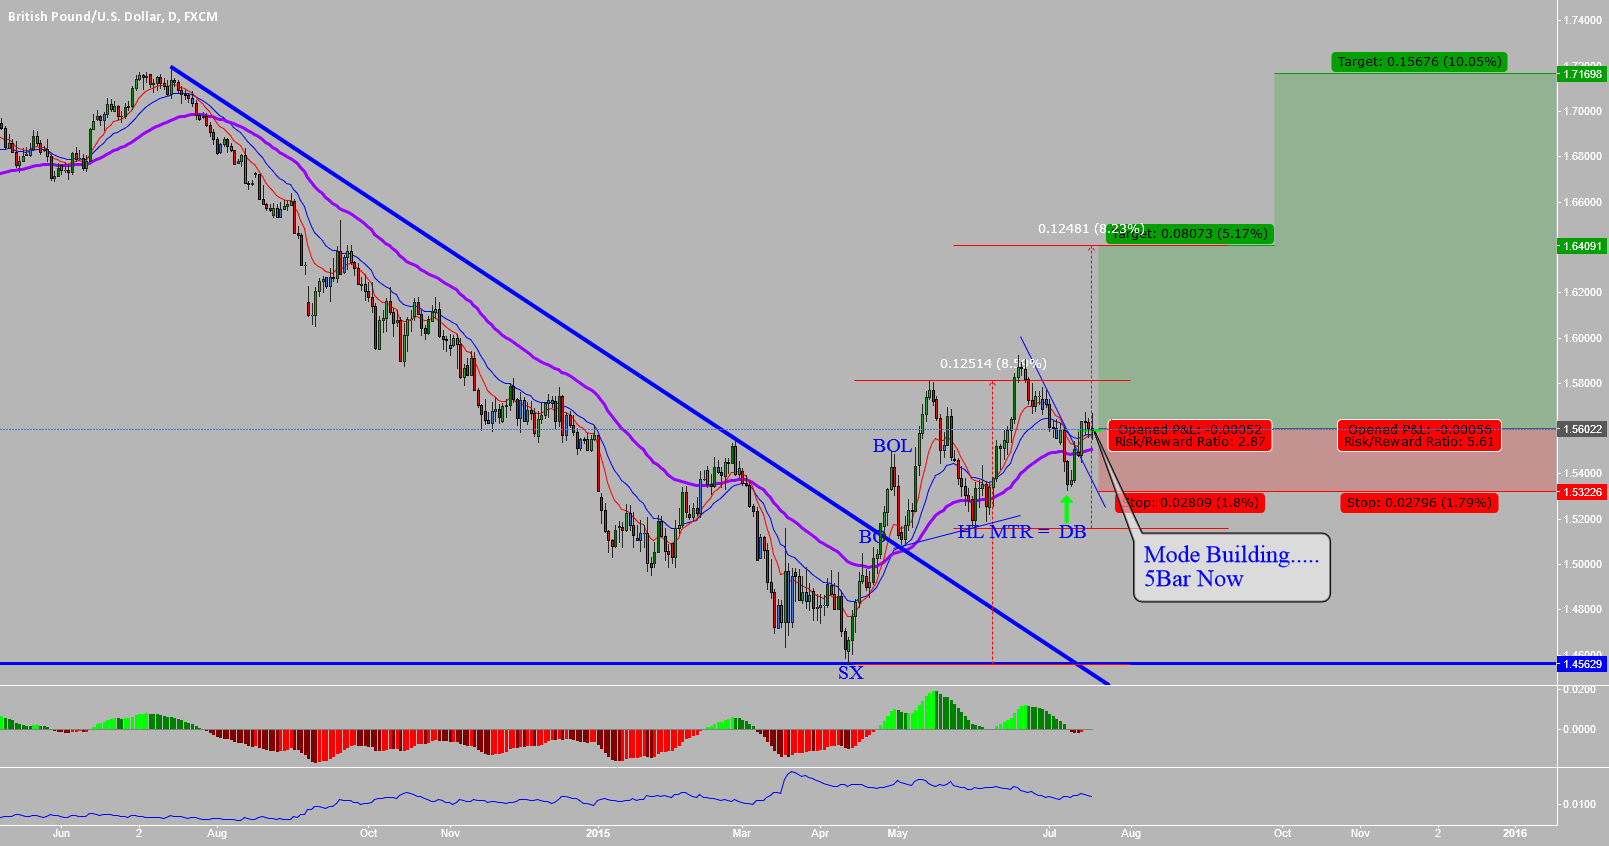 GBPUSD:  HIGHER LOW MAJOR TREND REVERSAL IN PLAY